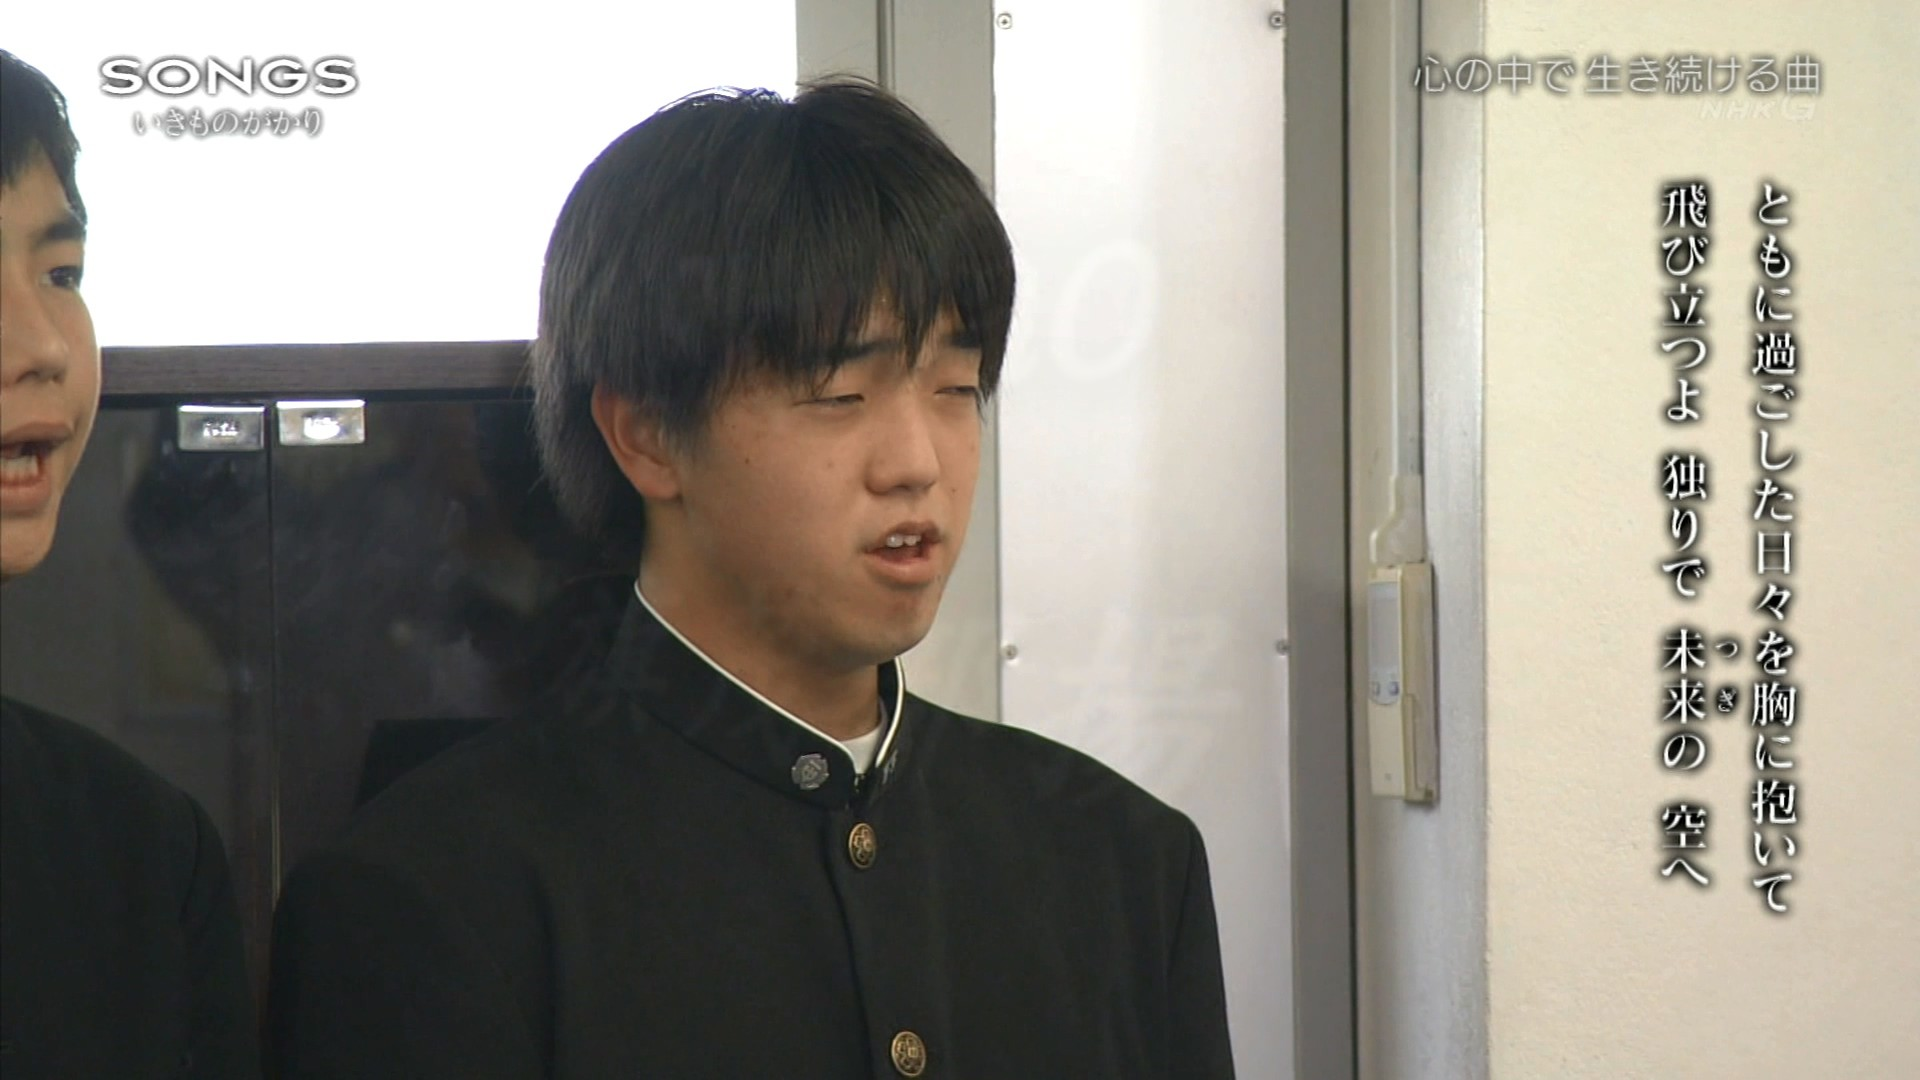 2016.04.28 全場(SONGS).ts_20160428_231618.012